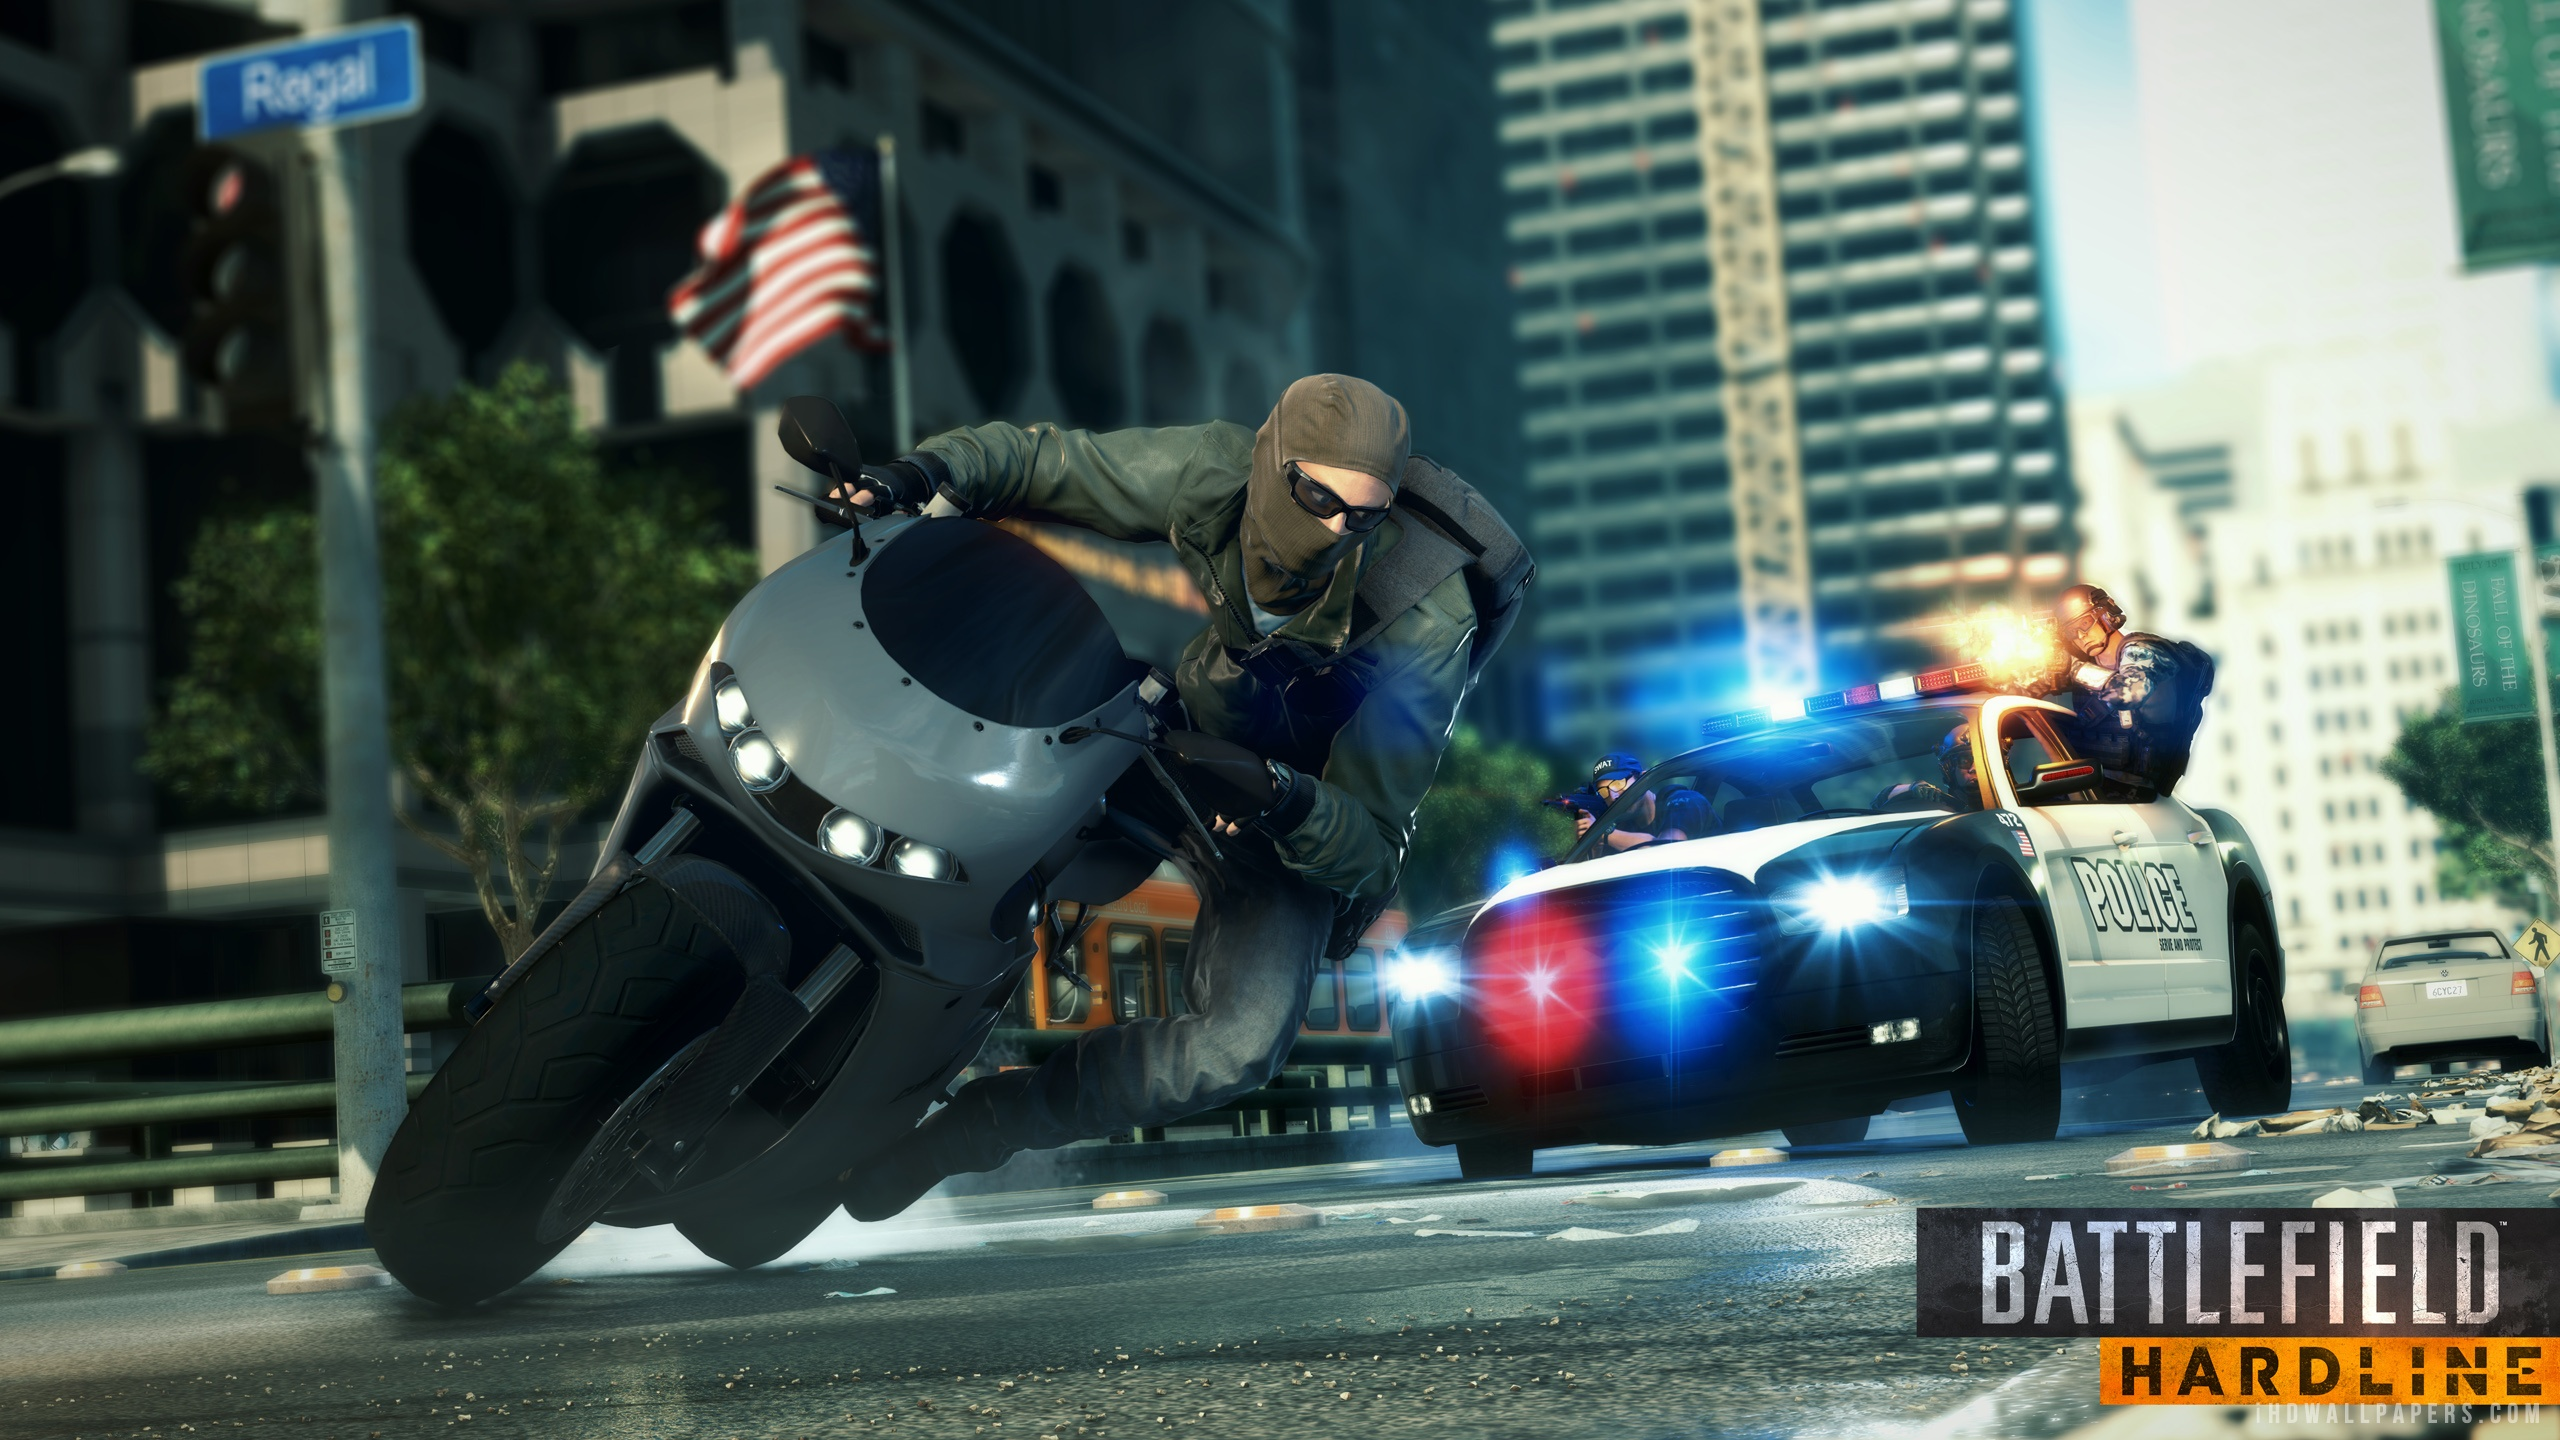 Battlefield Hardline Game Play wallpaper 2560x1440 2560x1440